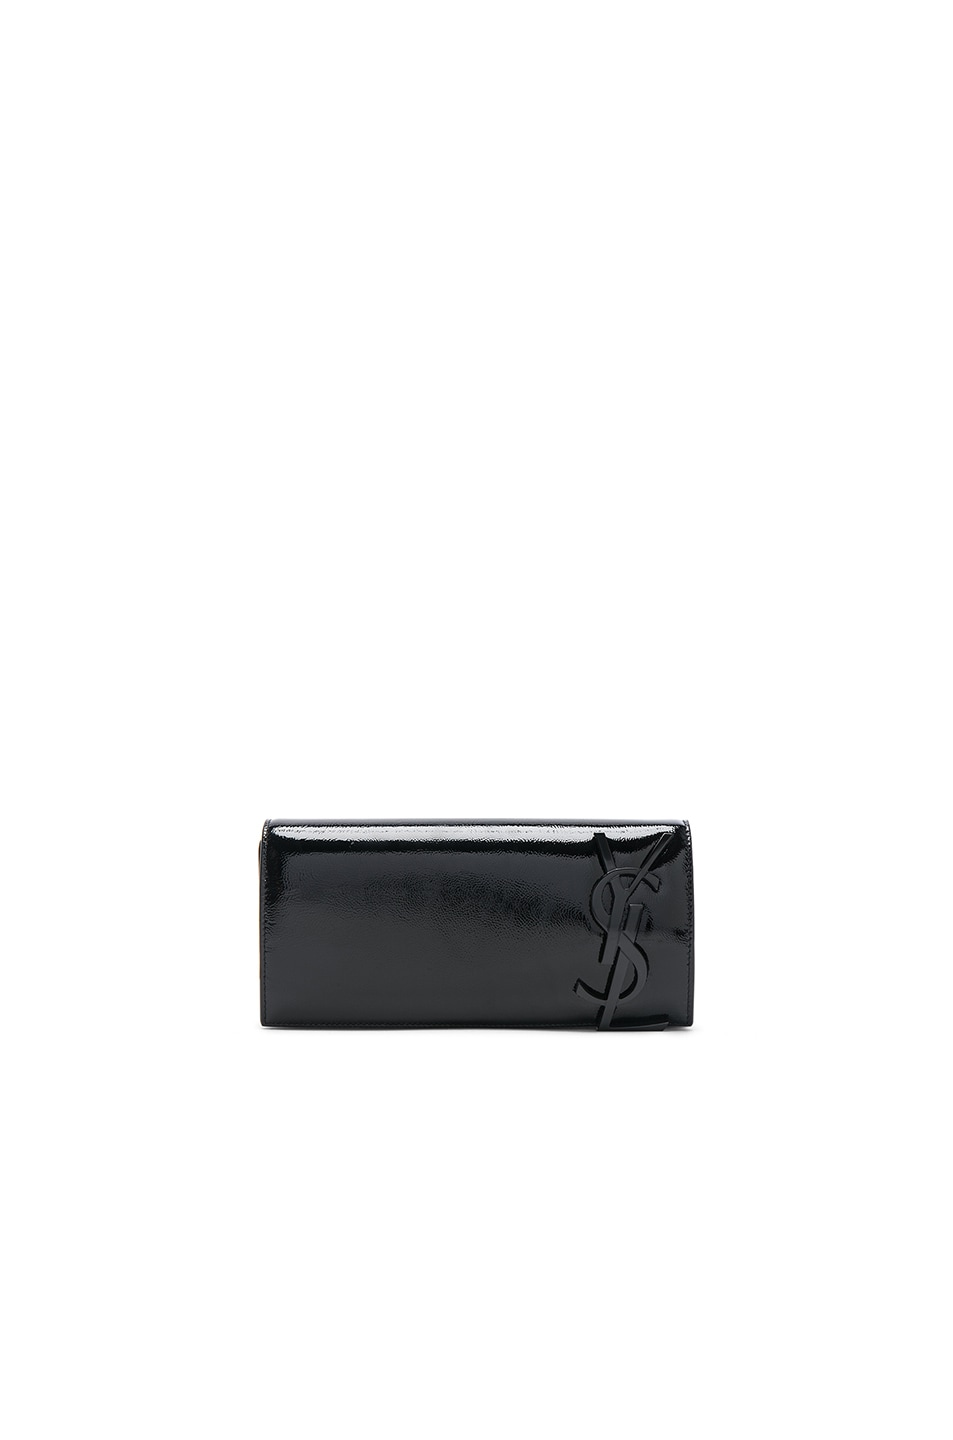 Image 1 of Saint Laurent Patent Smoking Clutch in Black